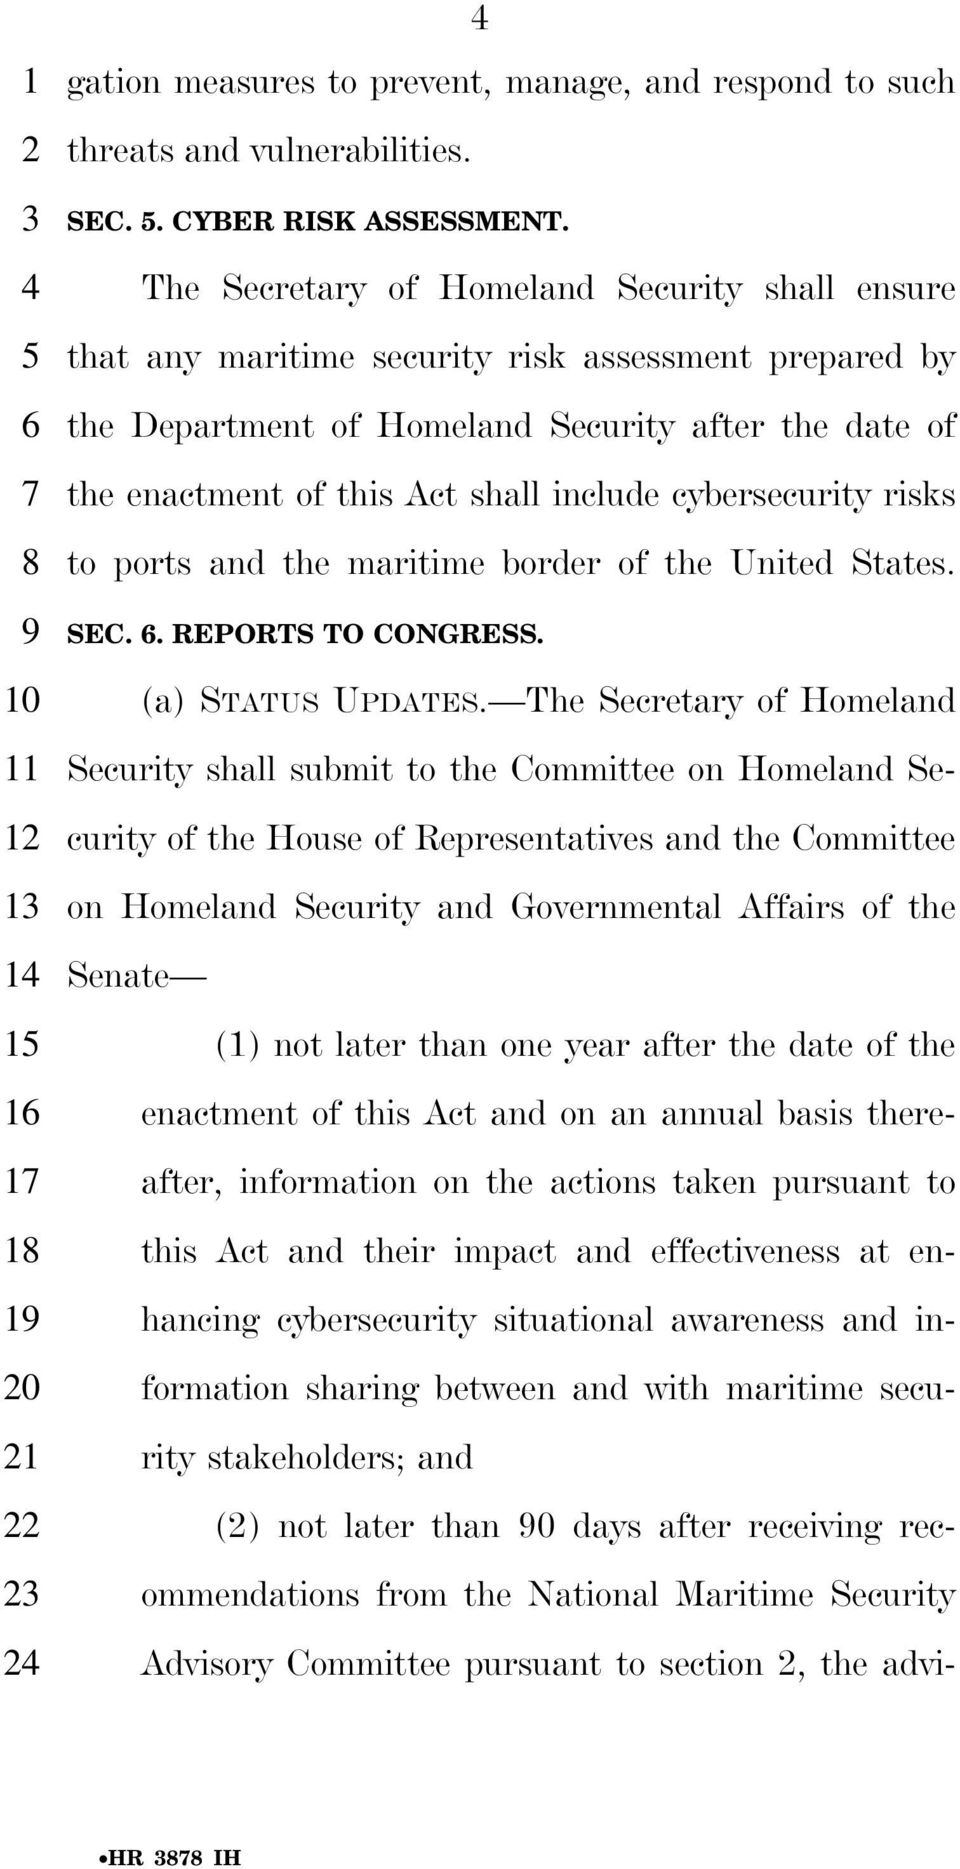 cybersecurity risks to ports and the maritime border of the United States. SEC.. REPORTS TO CONGRESS. (a) STATUS UPDATES.